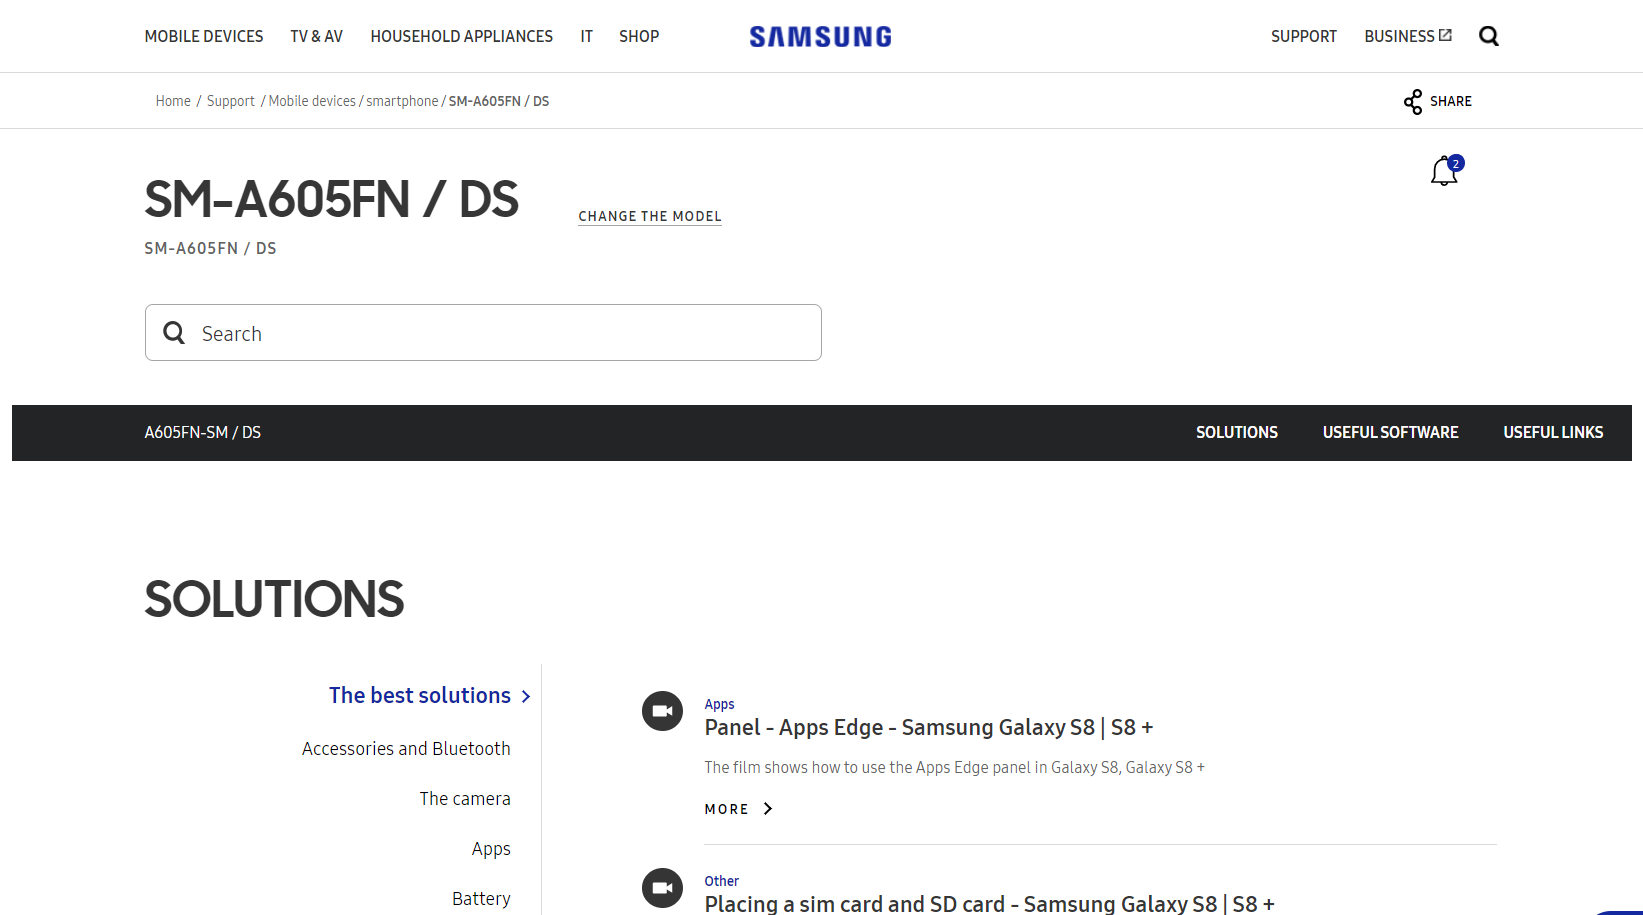 Samsung Galaxy A6 Plus Leaks On Samsung Website | Lowyat NET